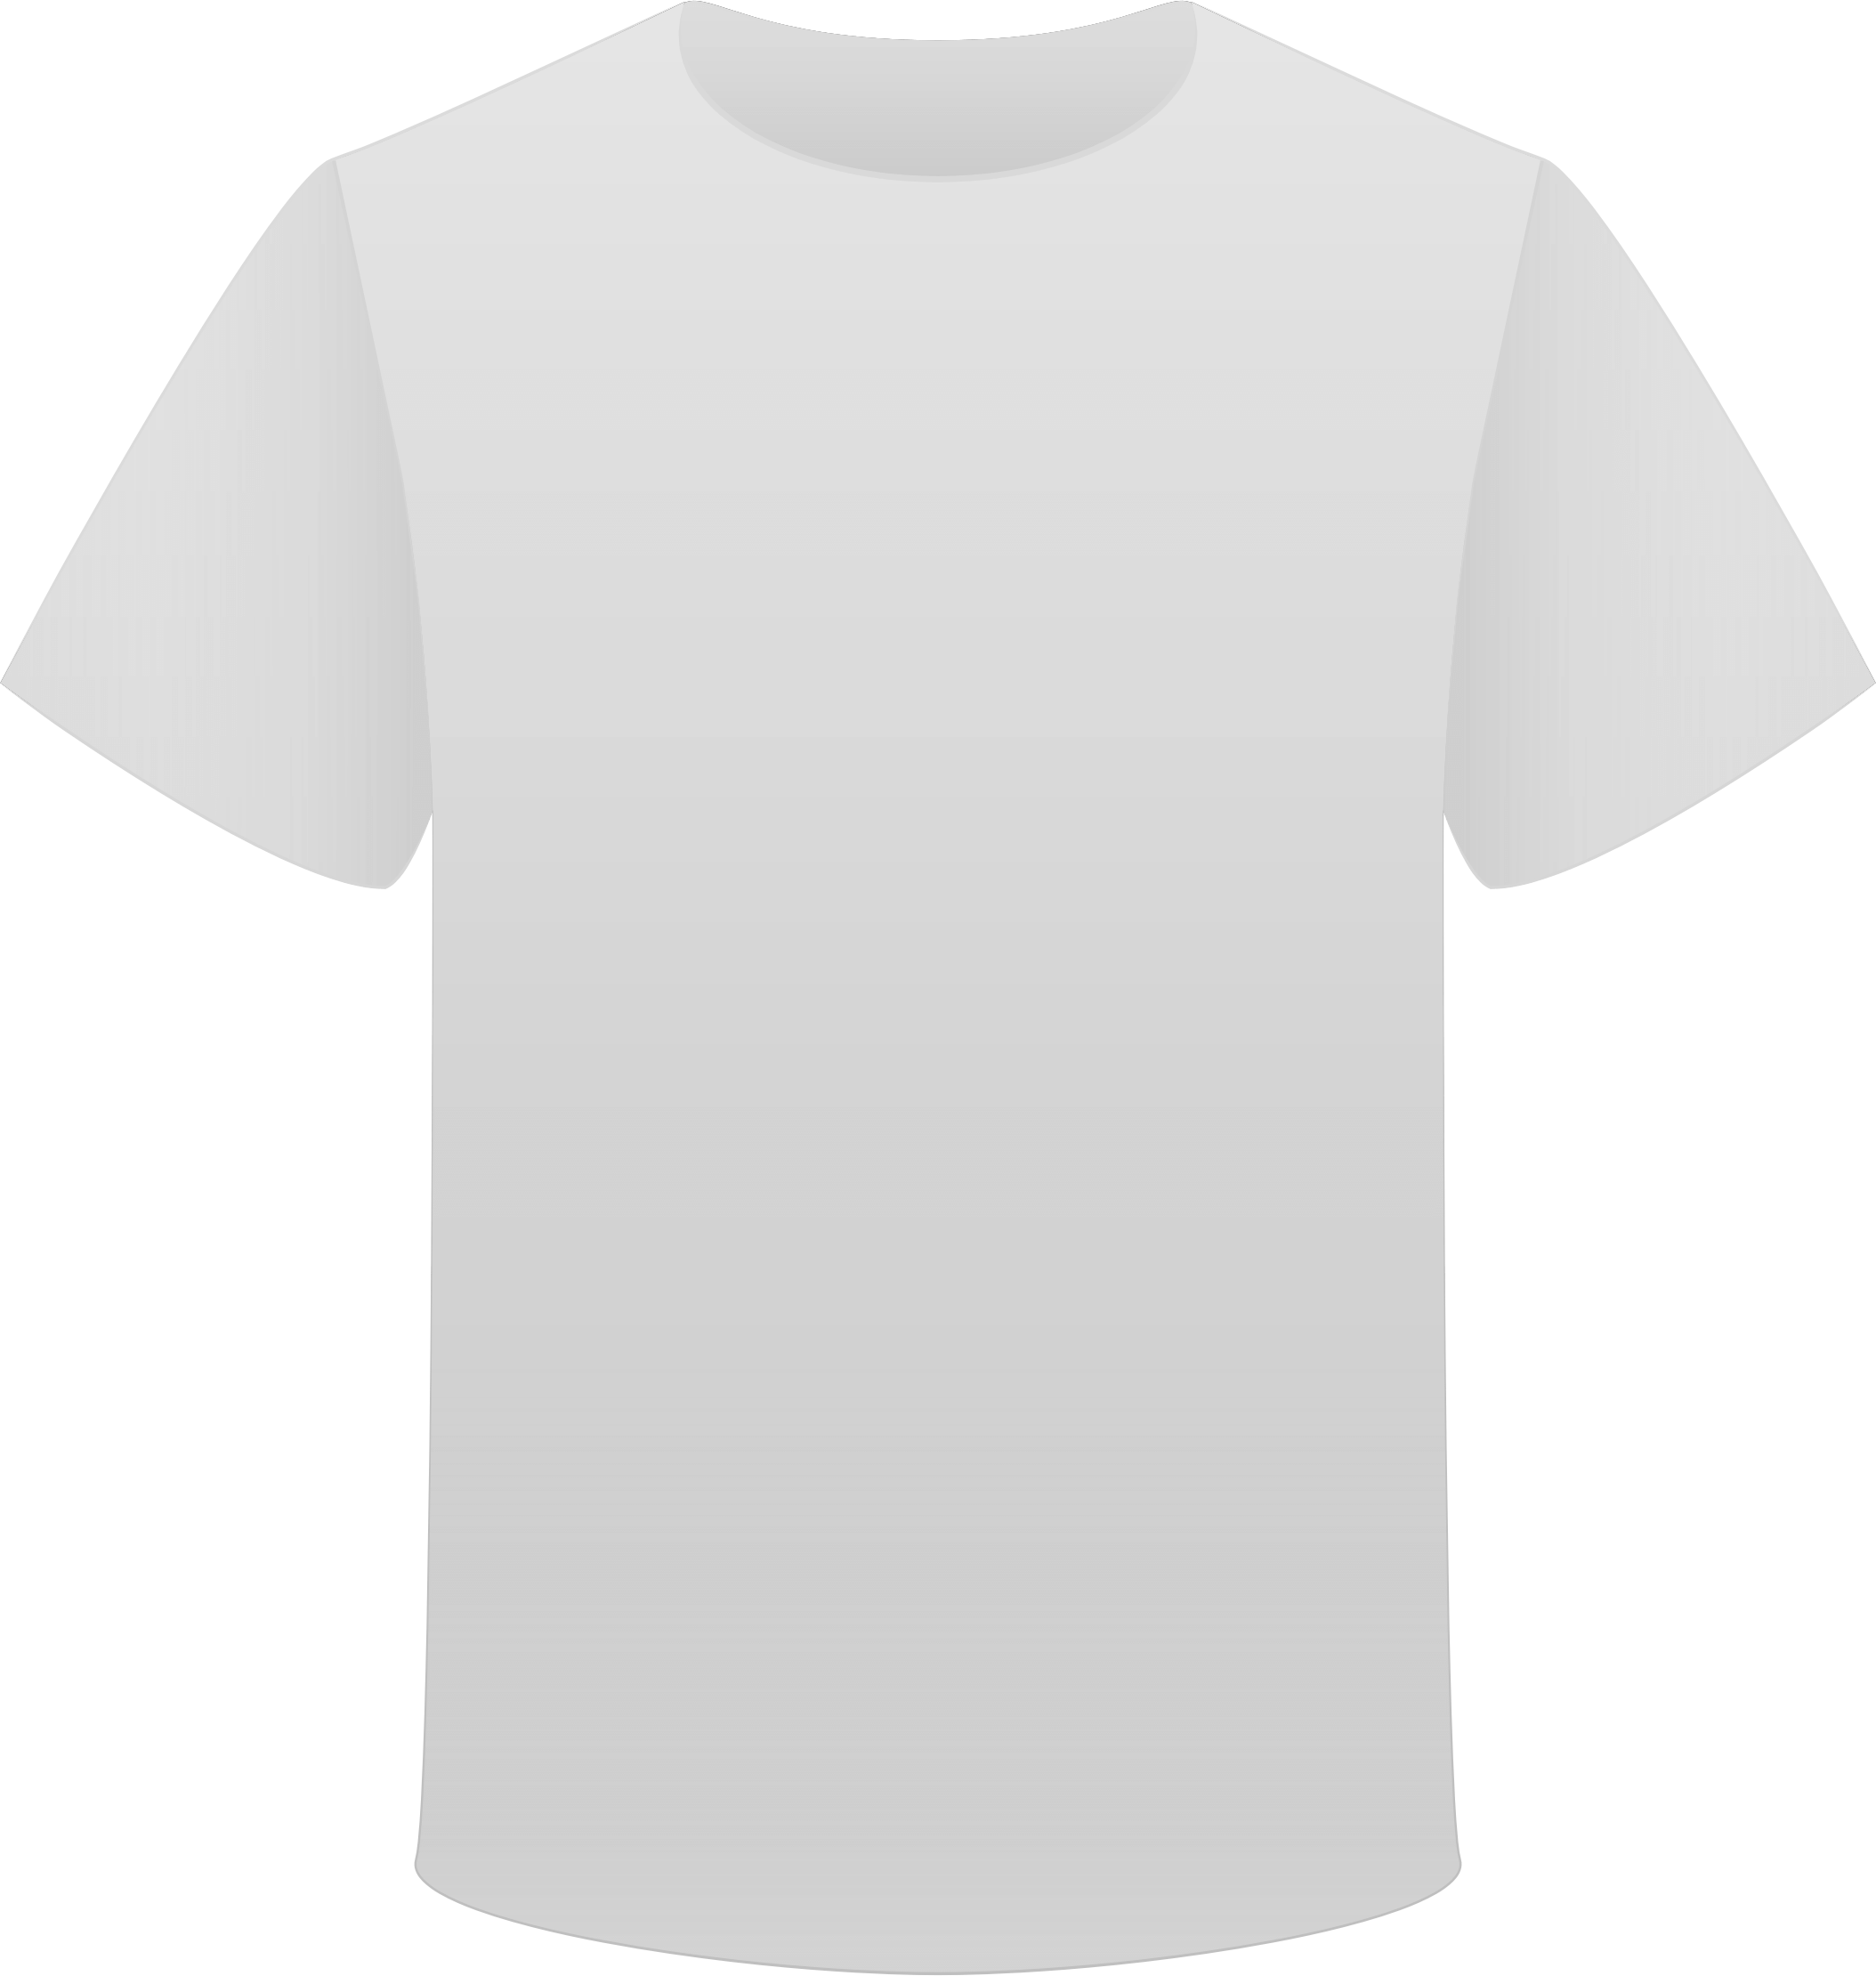 transparent tshirt white t shirt